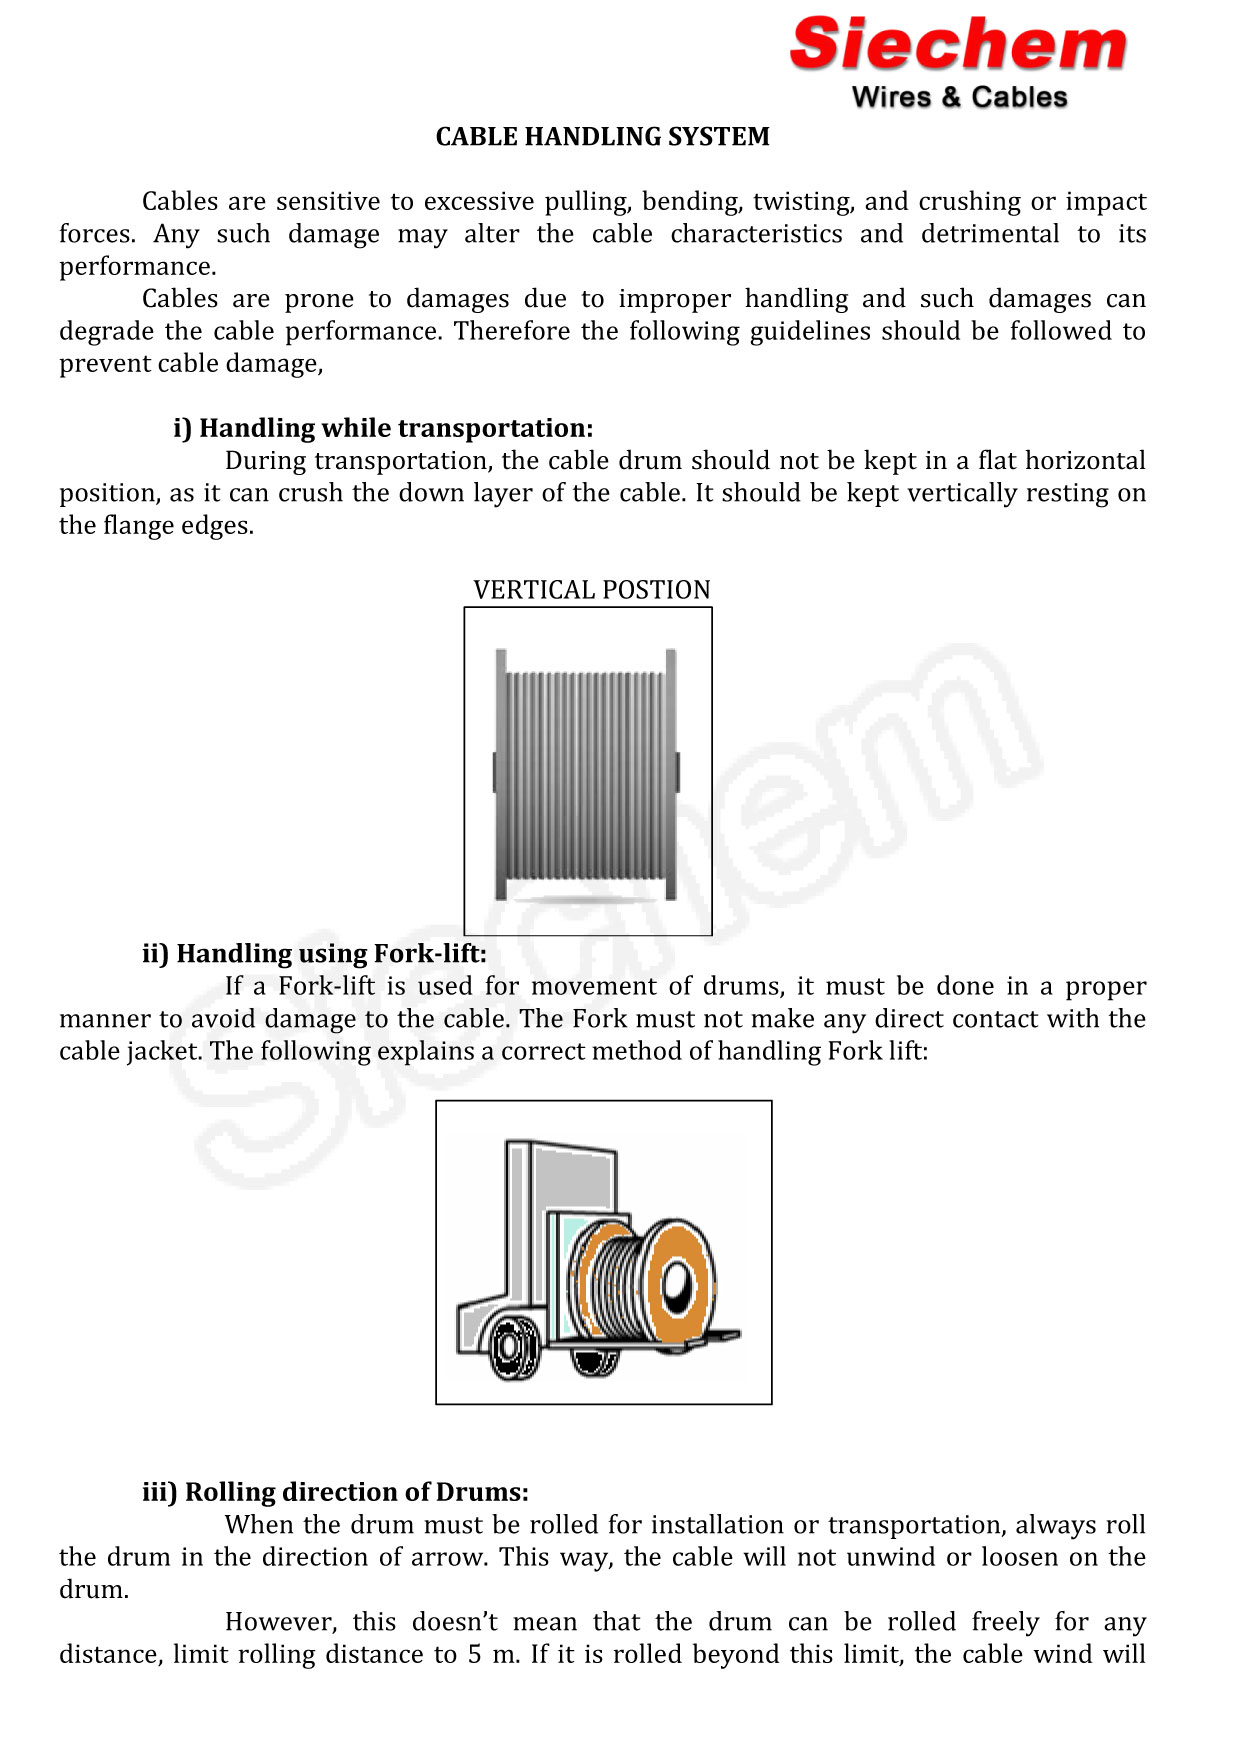 Cable_Handling_System-1